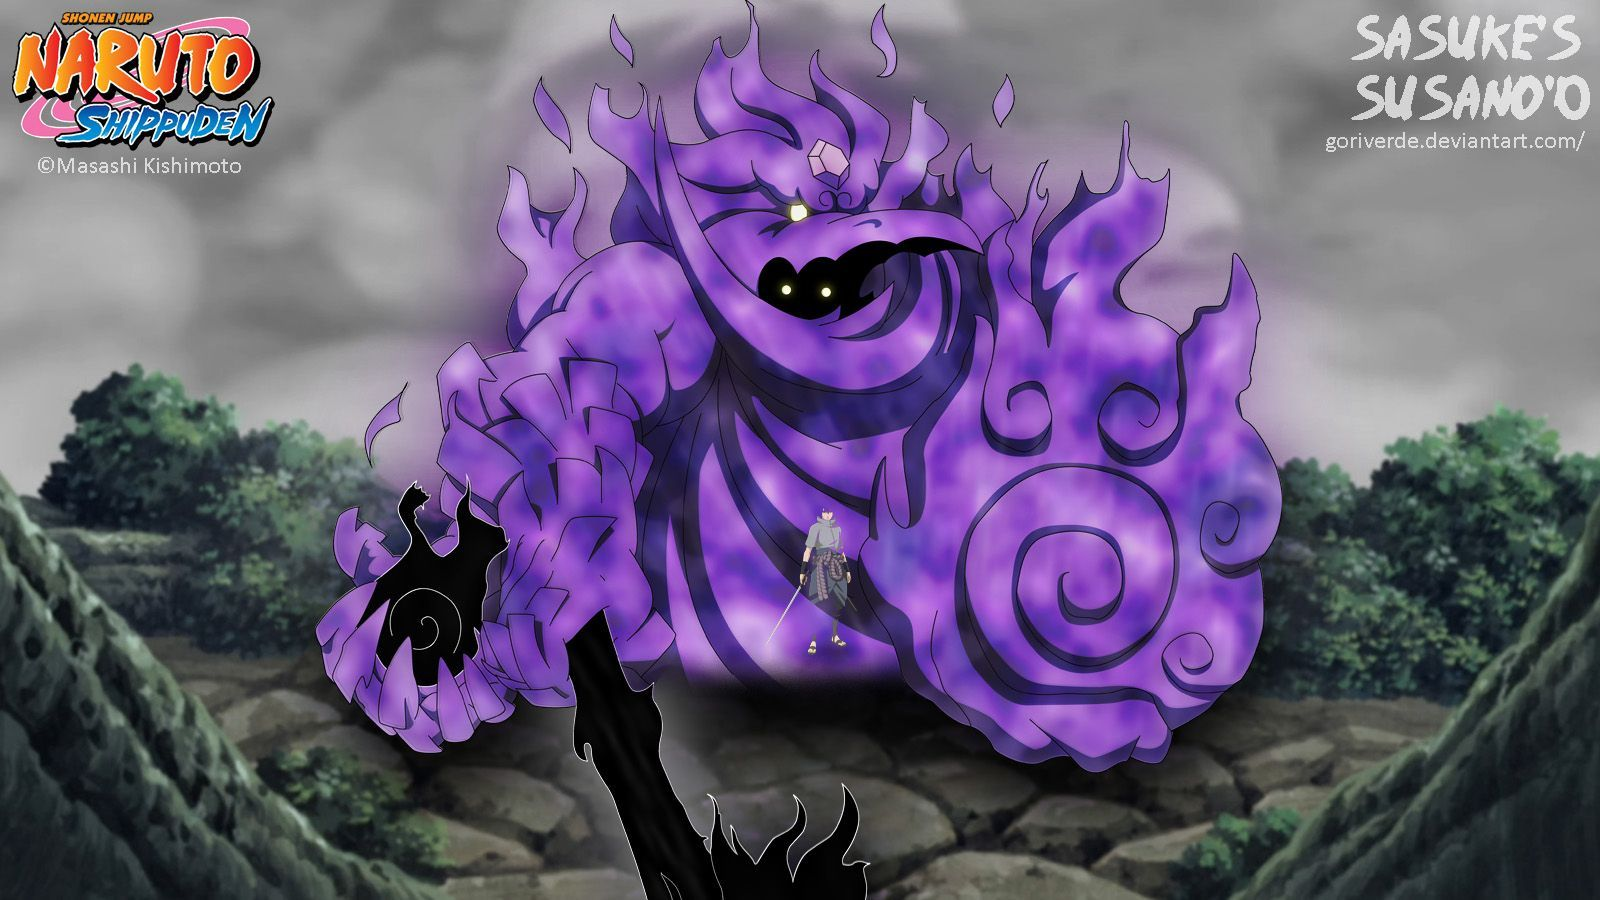 Sasuke Susanoo Wallpaper